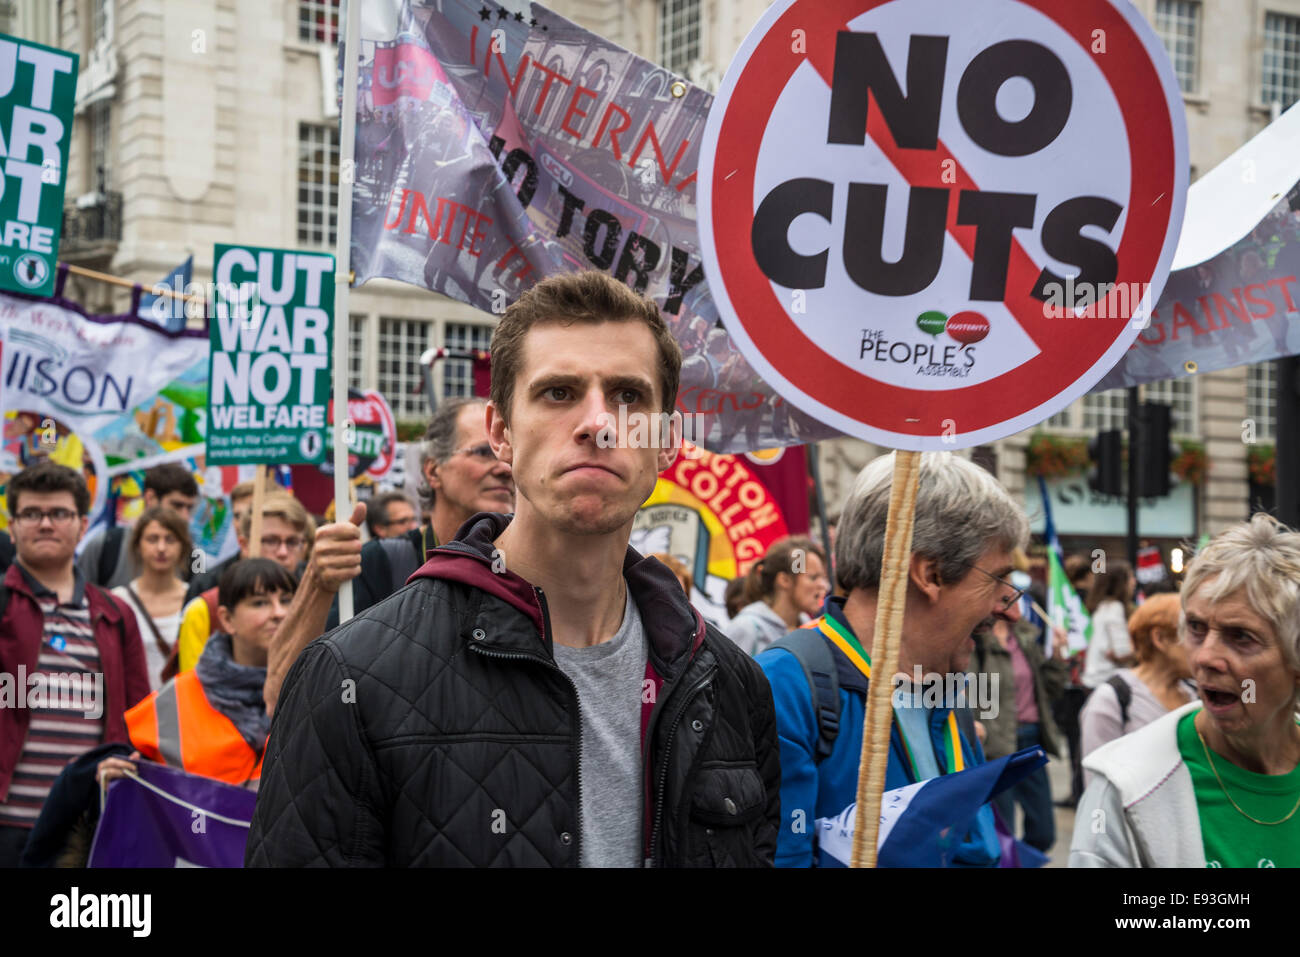 Angry looking young man with No Cuts placard. Britain Needs a Pay Rise march, London, 18 October 2014, UK Credit: - Stock Image